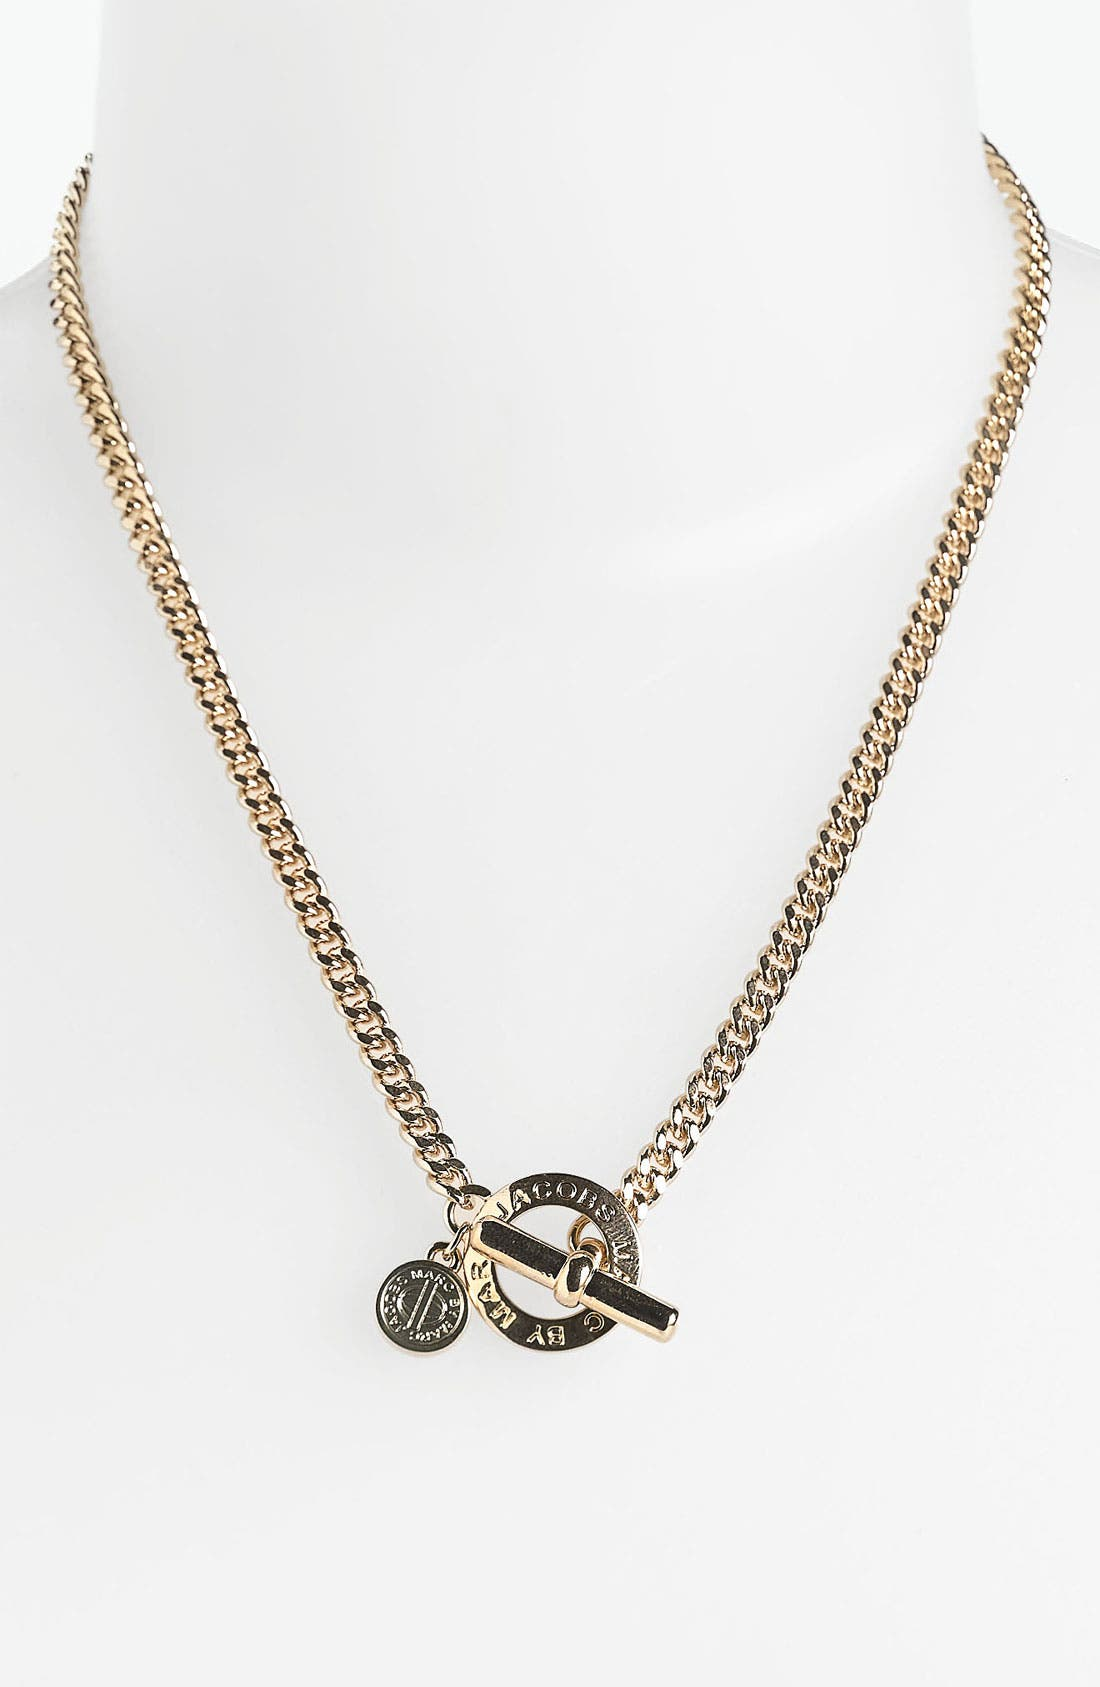 Main Image - MARC BY MARC JACOBS 'Toggles & Turnlocks' Link Necklace